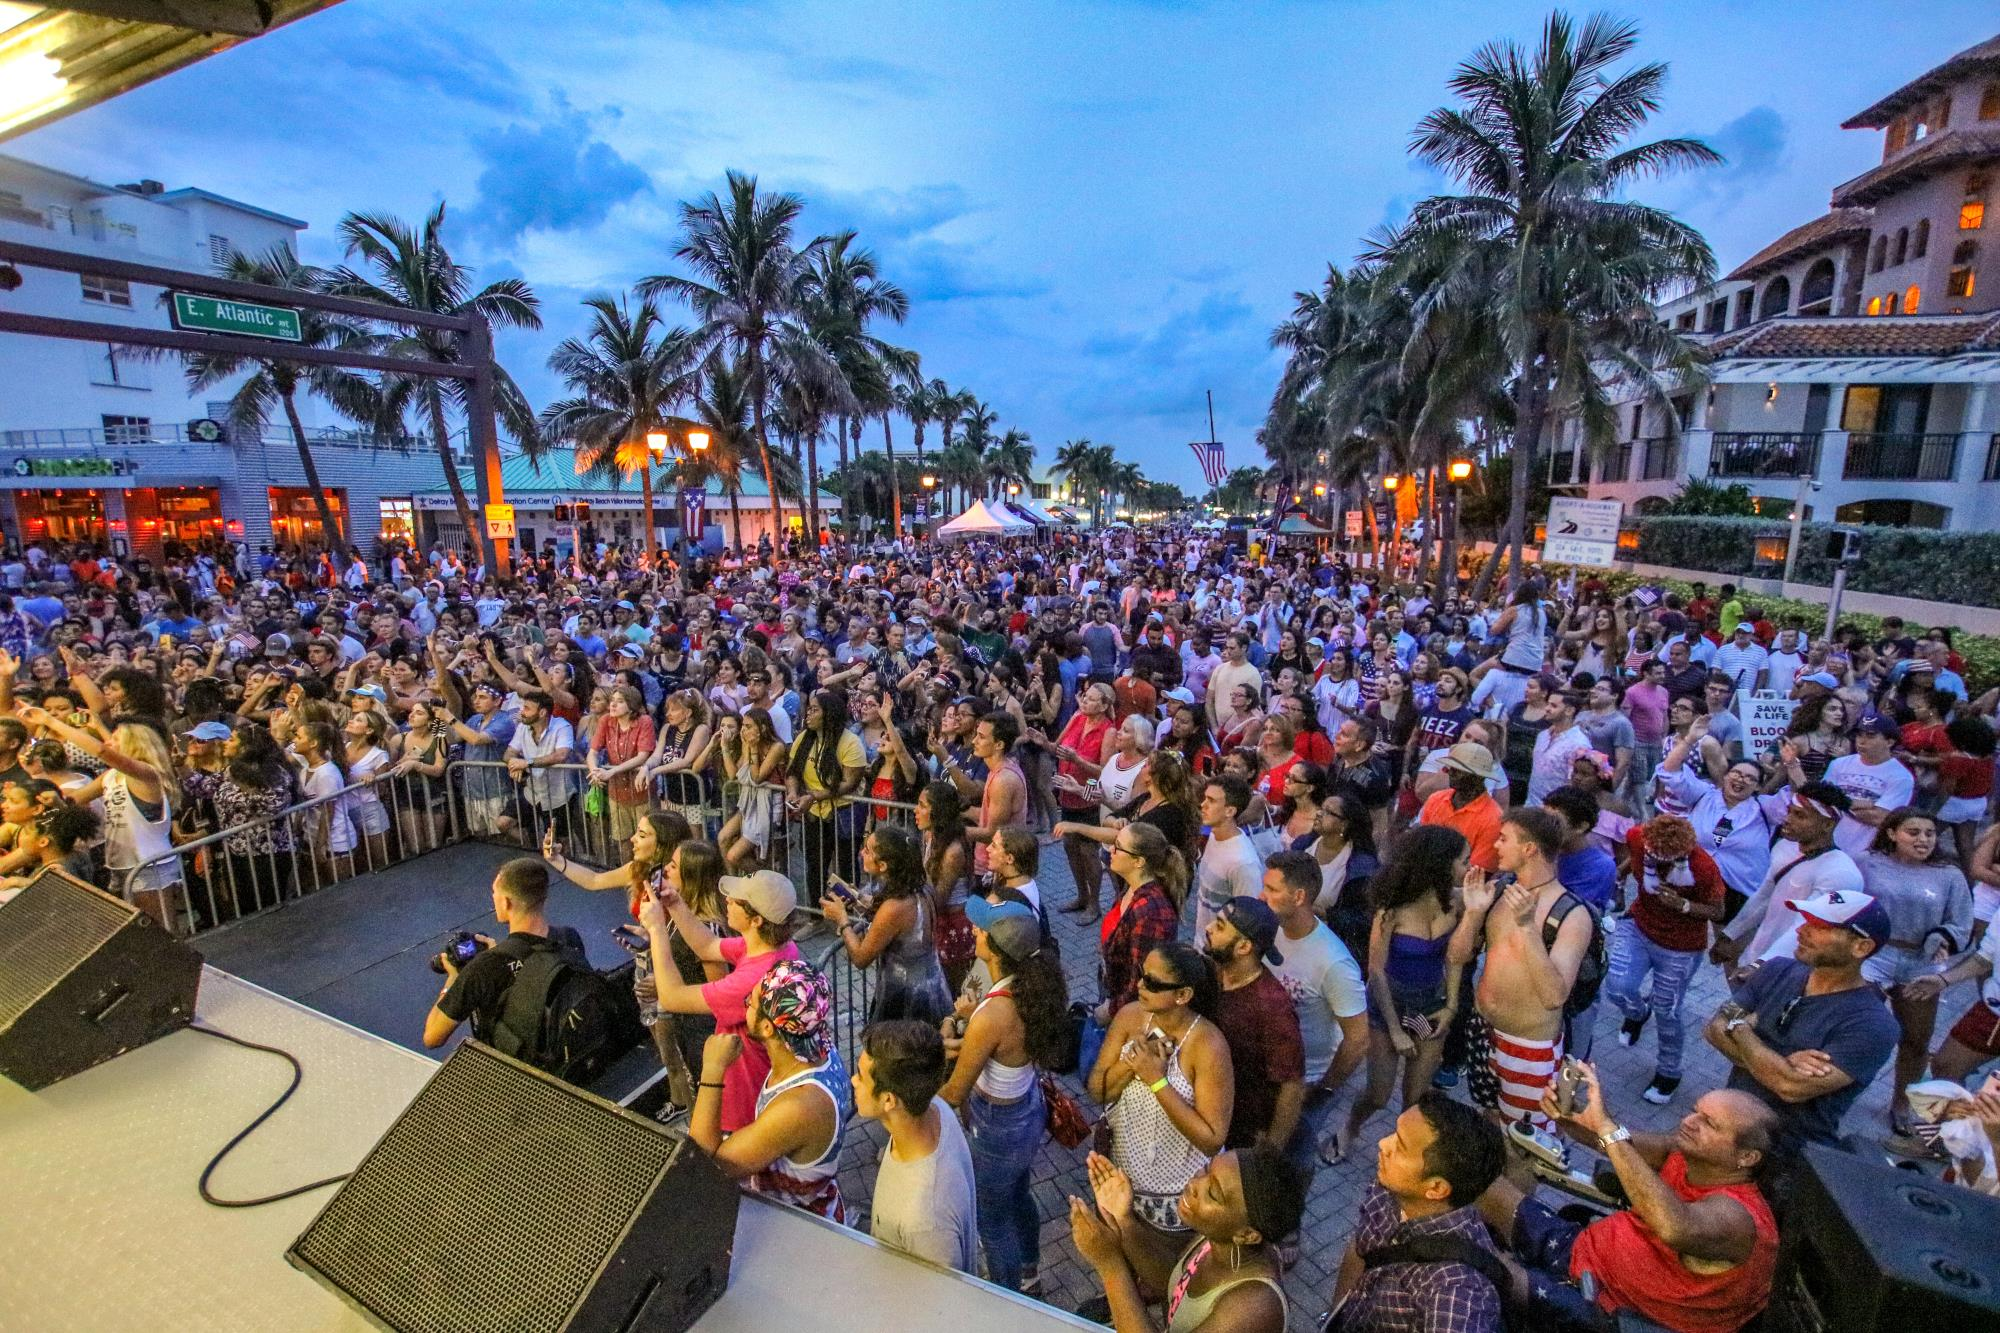 Delray beach 4th of July Concert